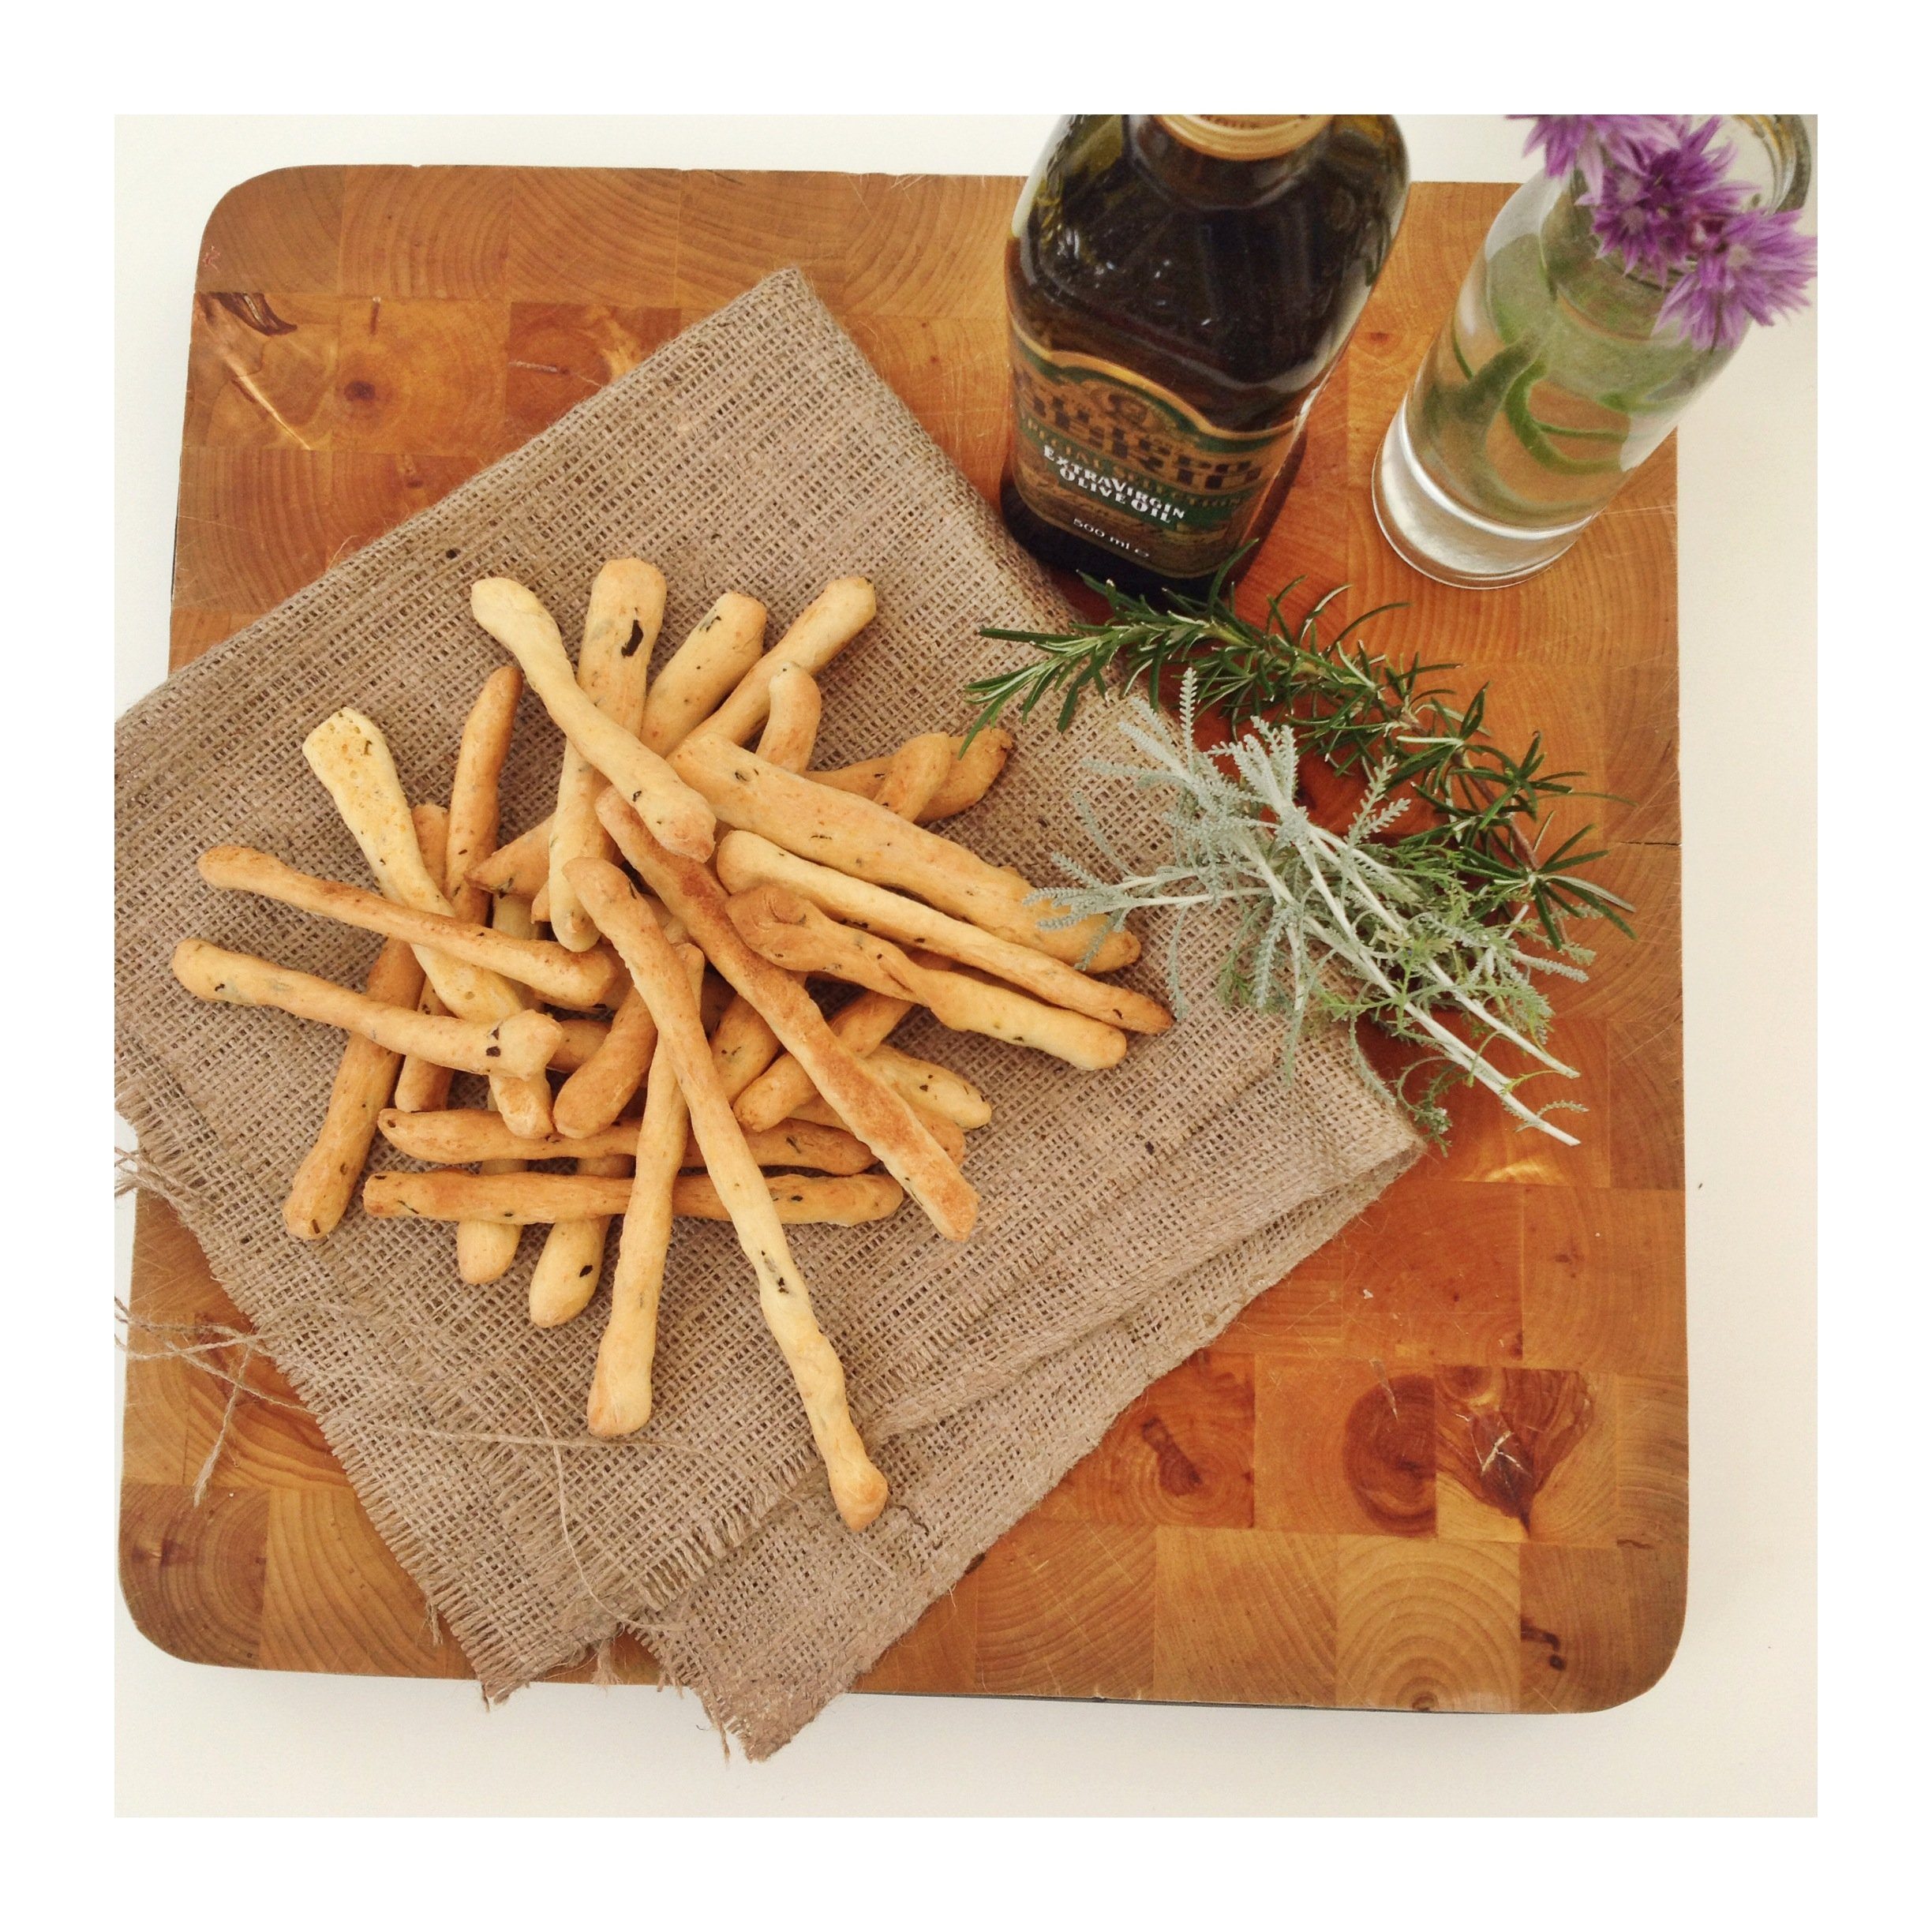 parmesan and herb breadsticks, easy breadstick recipe, cooking with kids breadstick recipe, herby breadsticks, daisies and pie